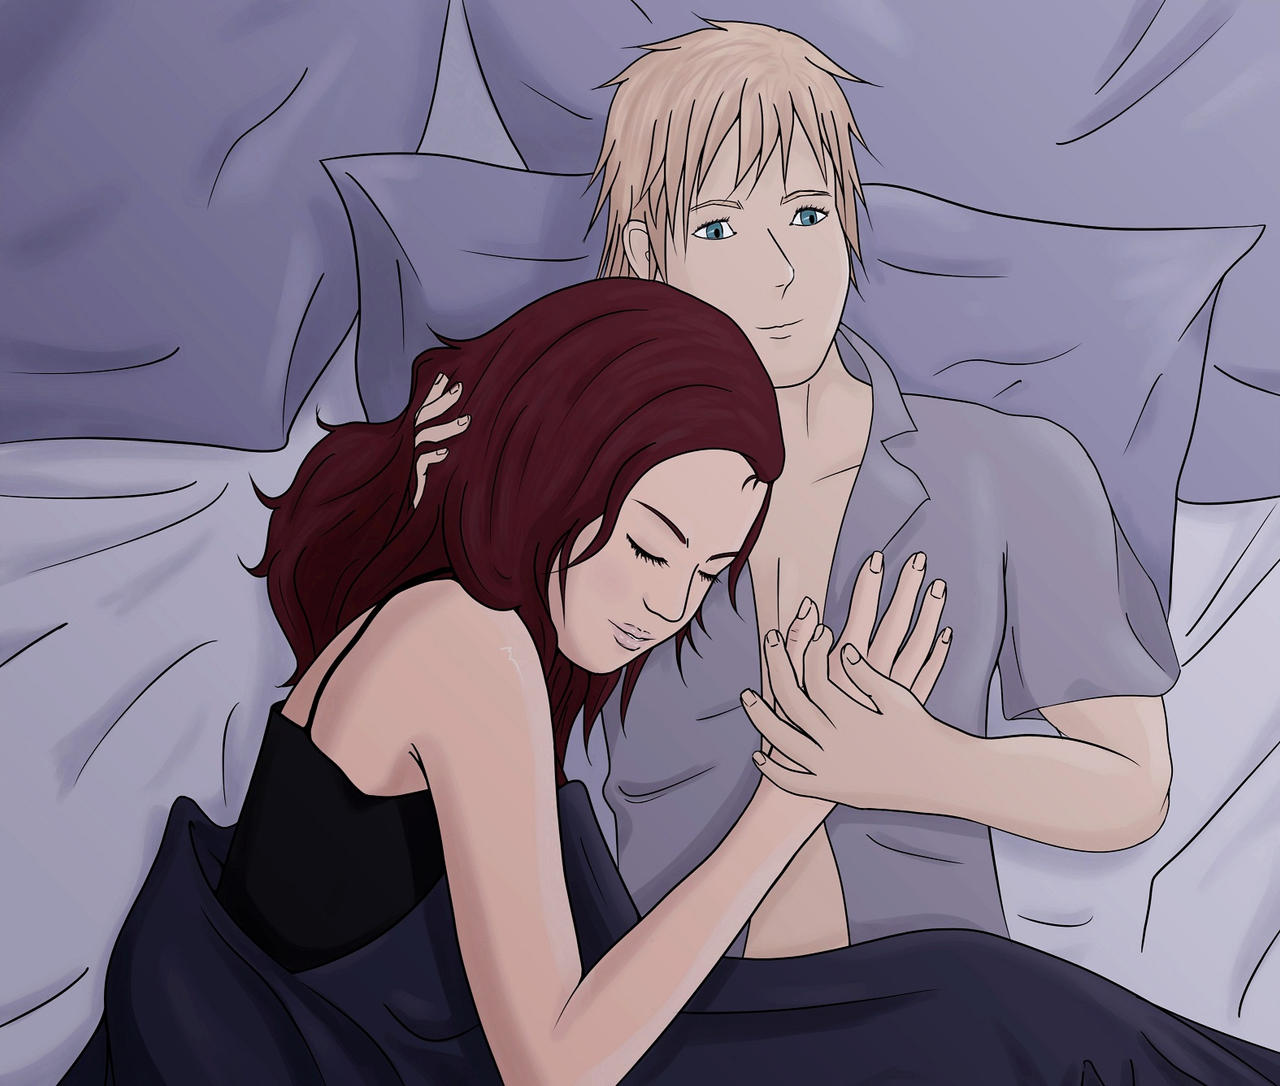 Katniss and Peeta: Sweet Dreams by xHeeendlx